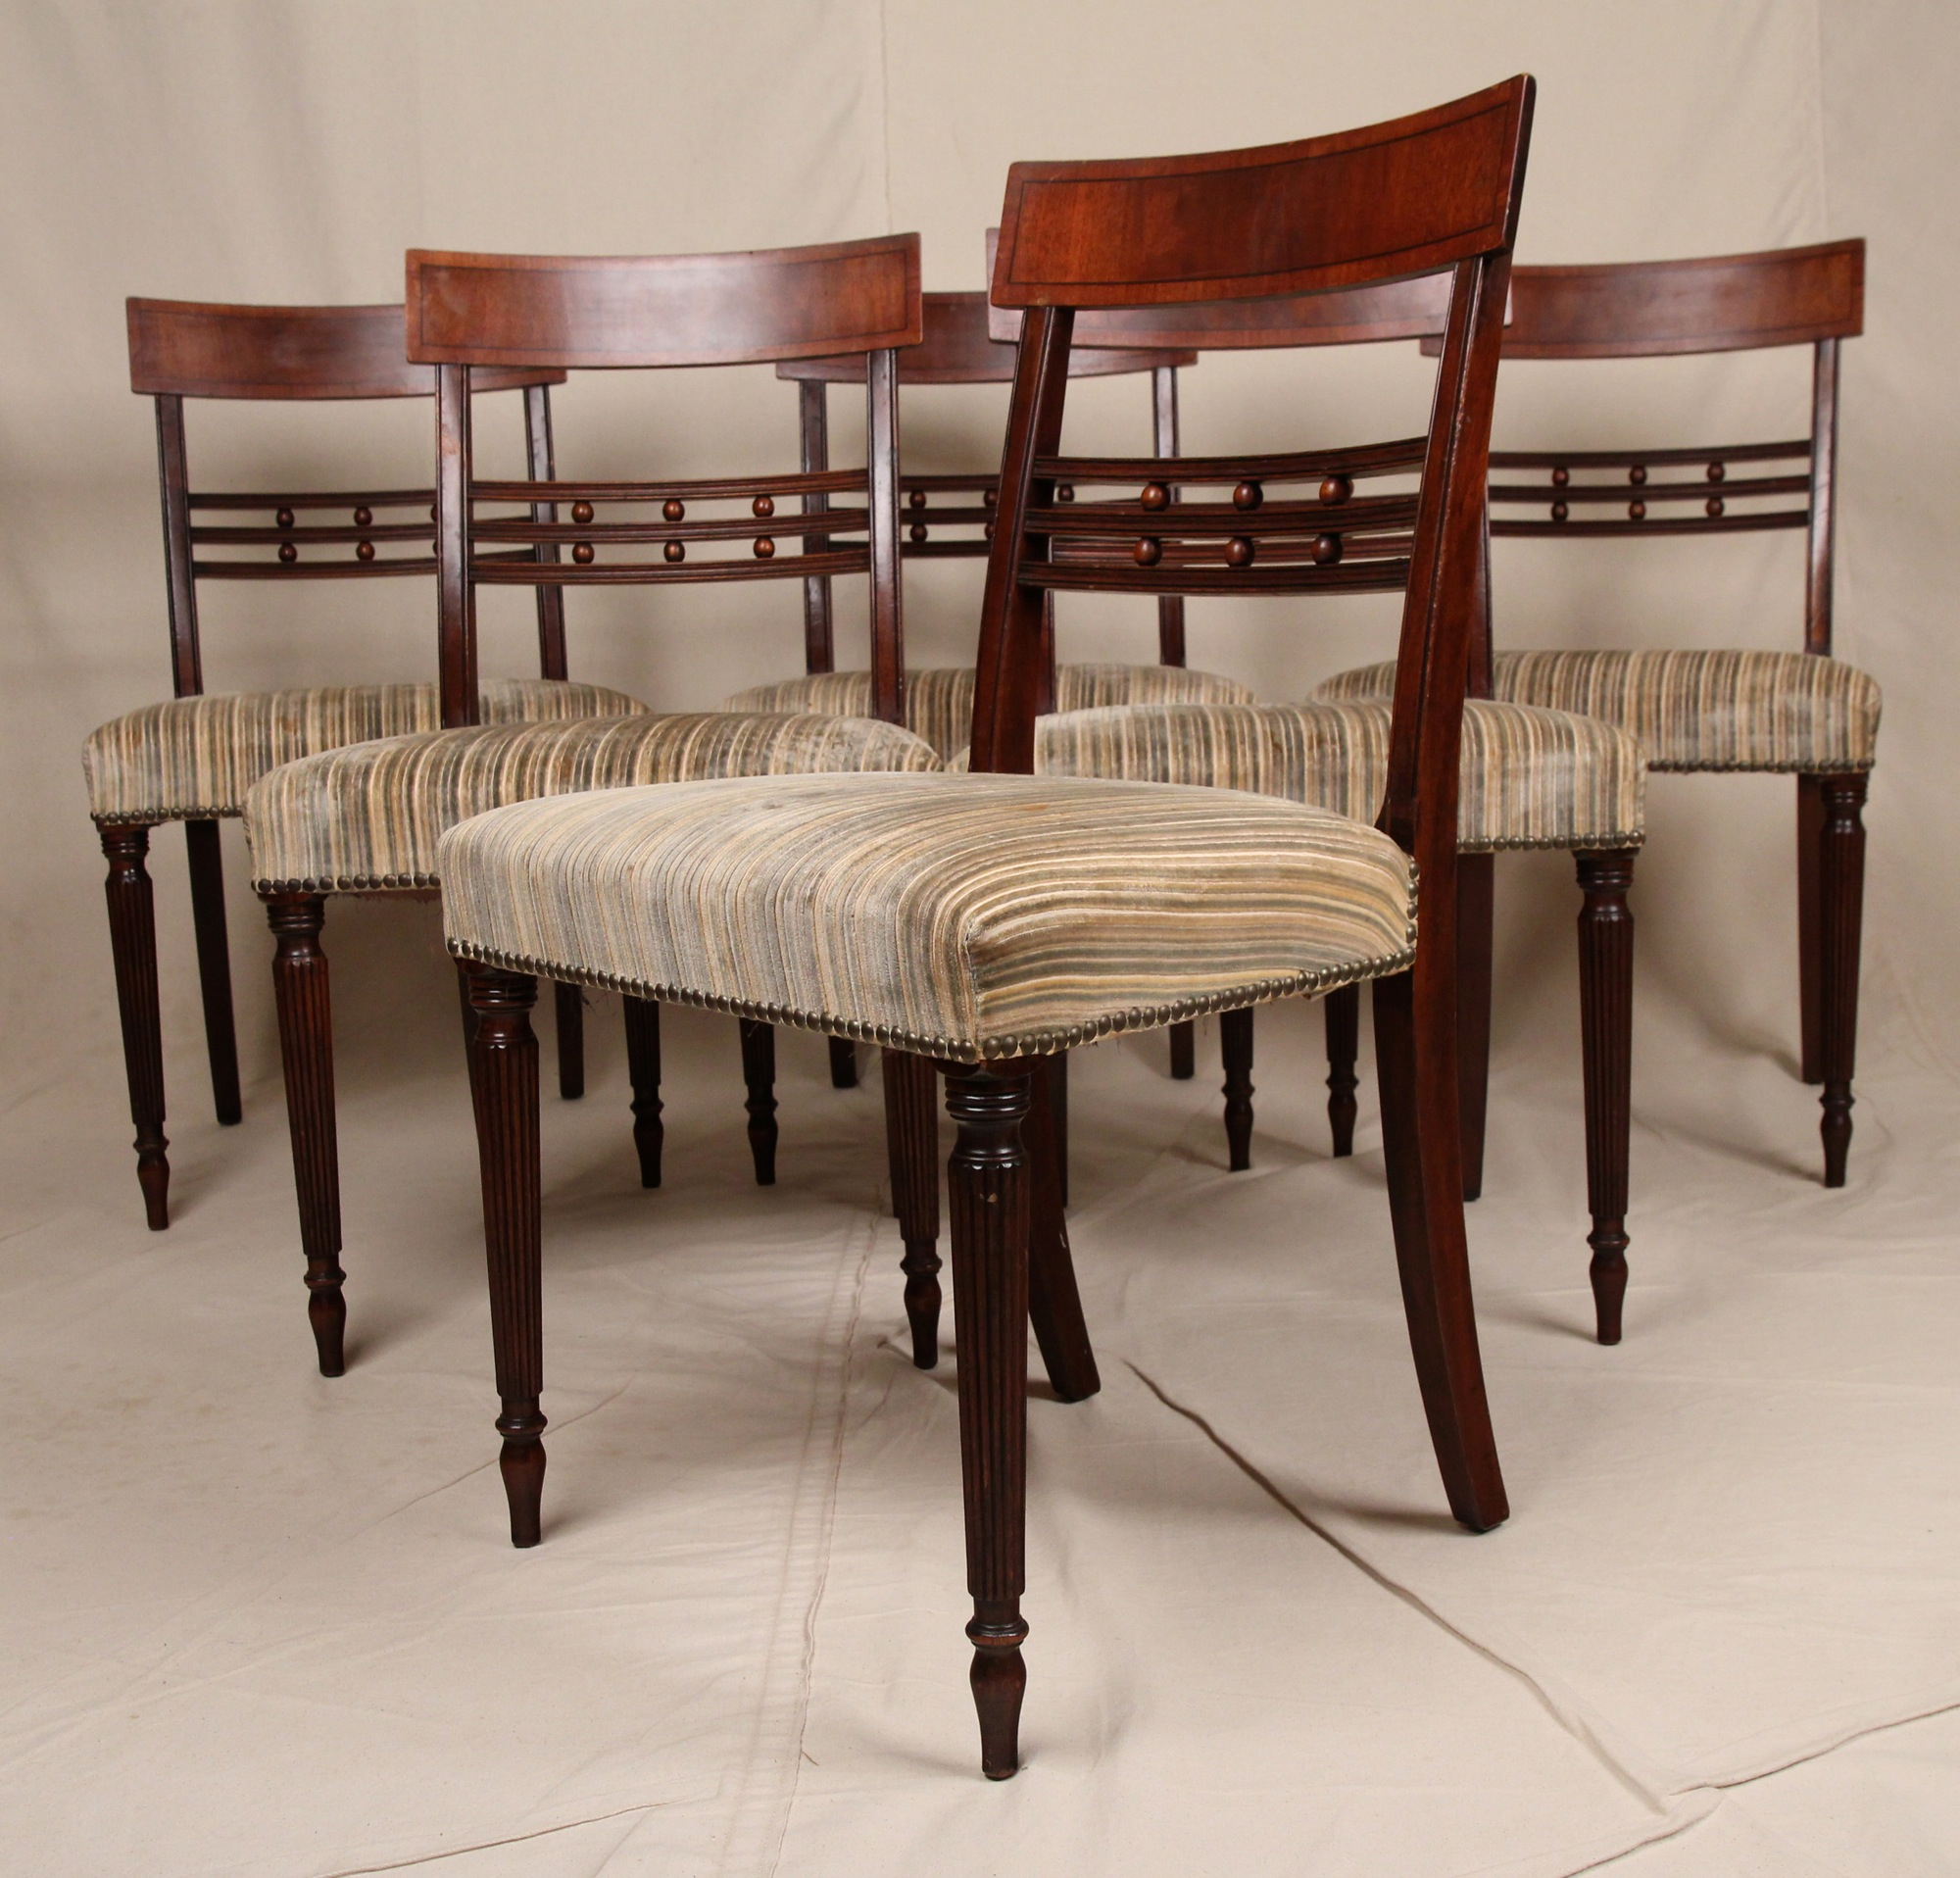 federal dining chairs swing chair afterpay set six american sheraton antique style mahogany